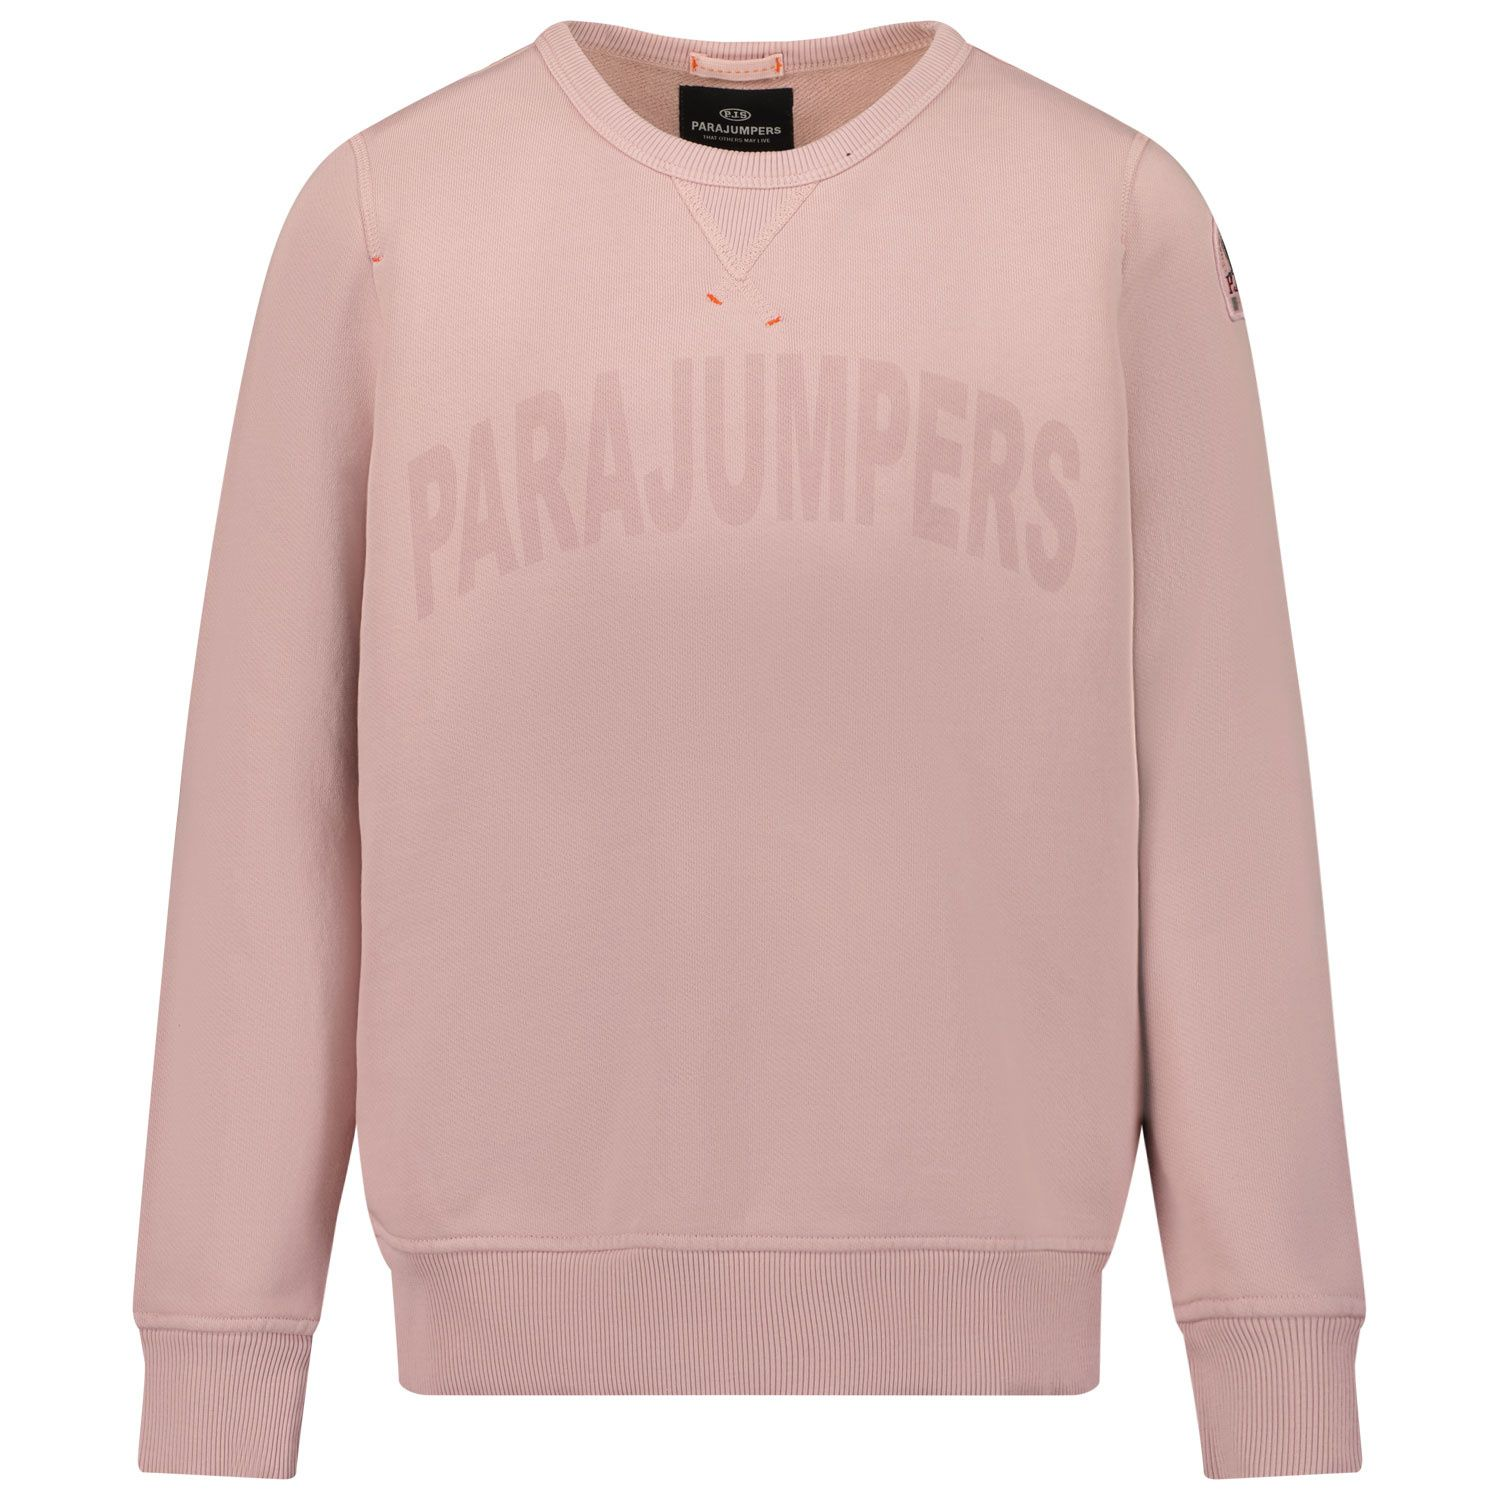 Picture of Parajumpers CF86 kids sweater light pink